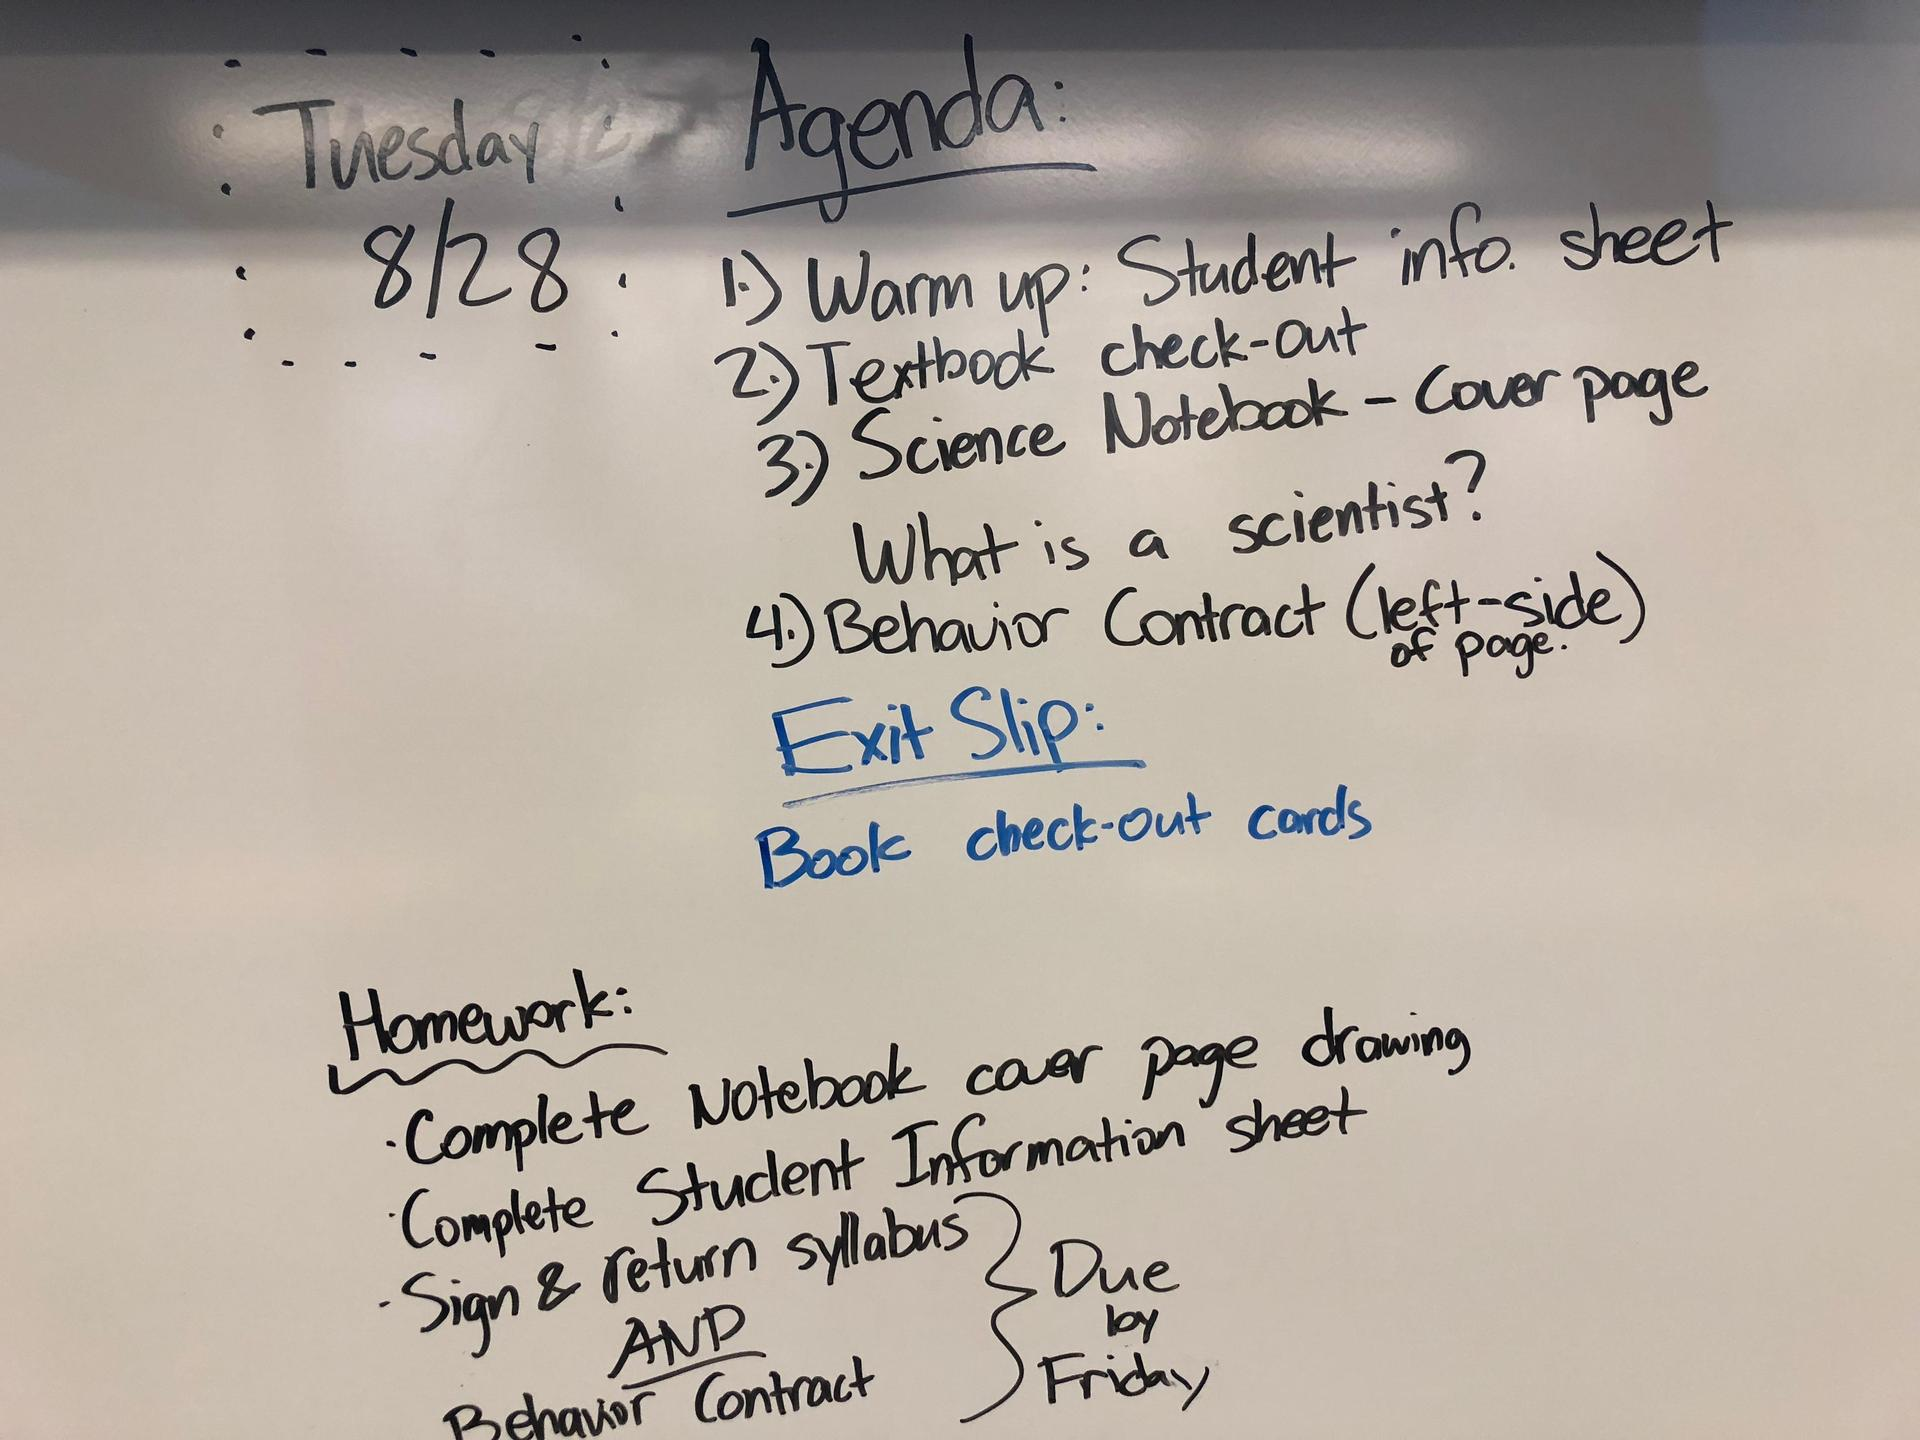 Agenda for 8/28: 1. Warm up: Student info Sheet 2. Textbook Check-out 3. Science notebook cover page, 'What is a scientist'? 4. Behavior contract (left side) Exit slip: Book check-out cards. Homework: Complete notebook cover page drawing, complete student information sheet, sign and return syllabus (due Friday)